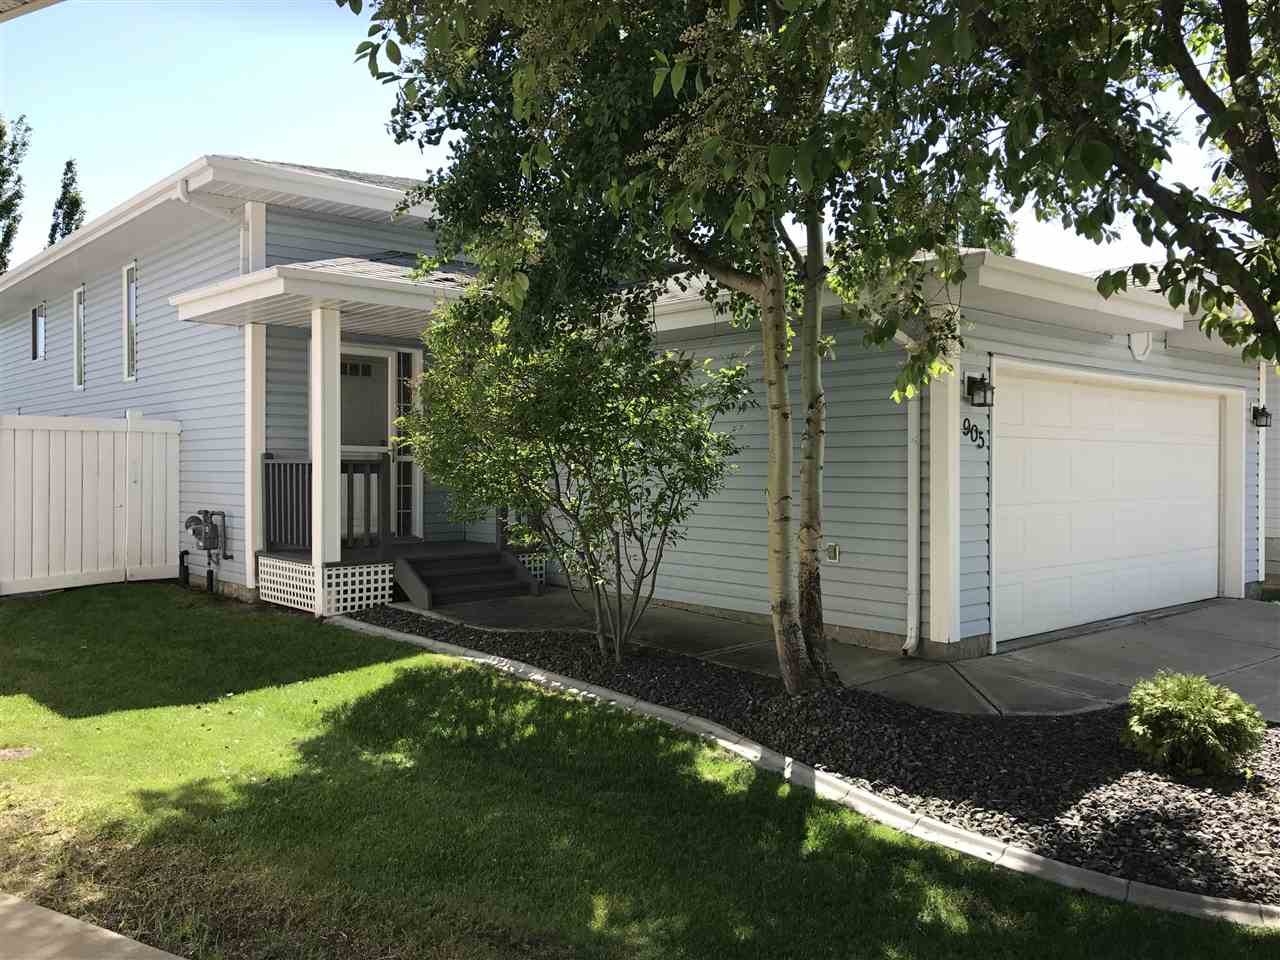 Main Photo: 905 116A Street in Edmonton: Zone 16 House for sale : MLS(r) # E4066503